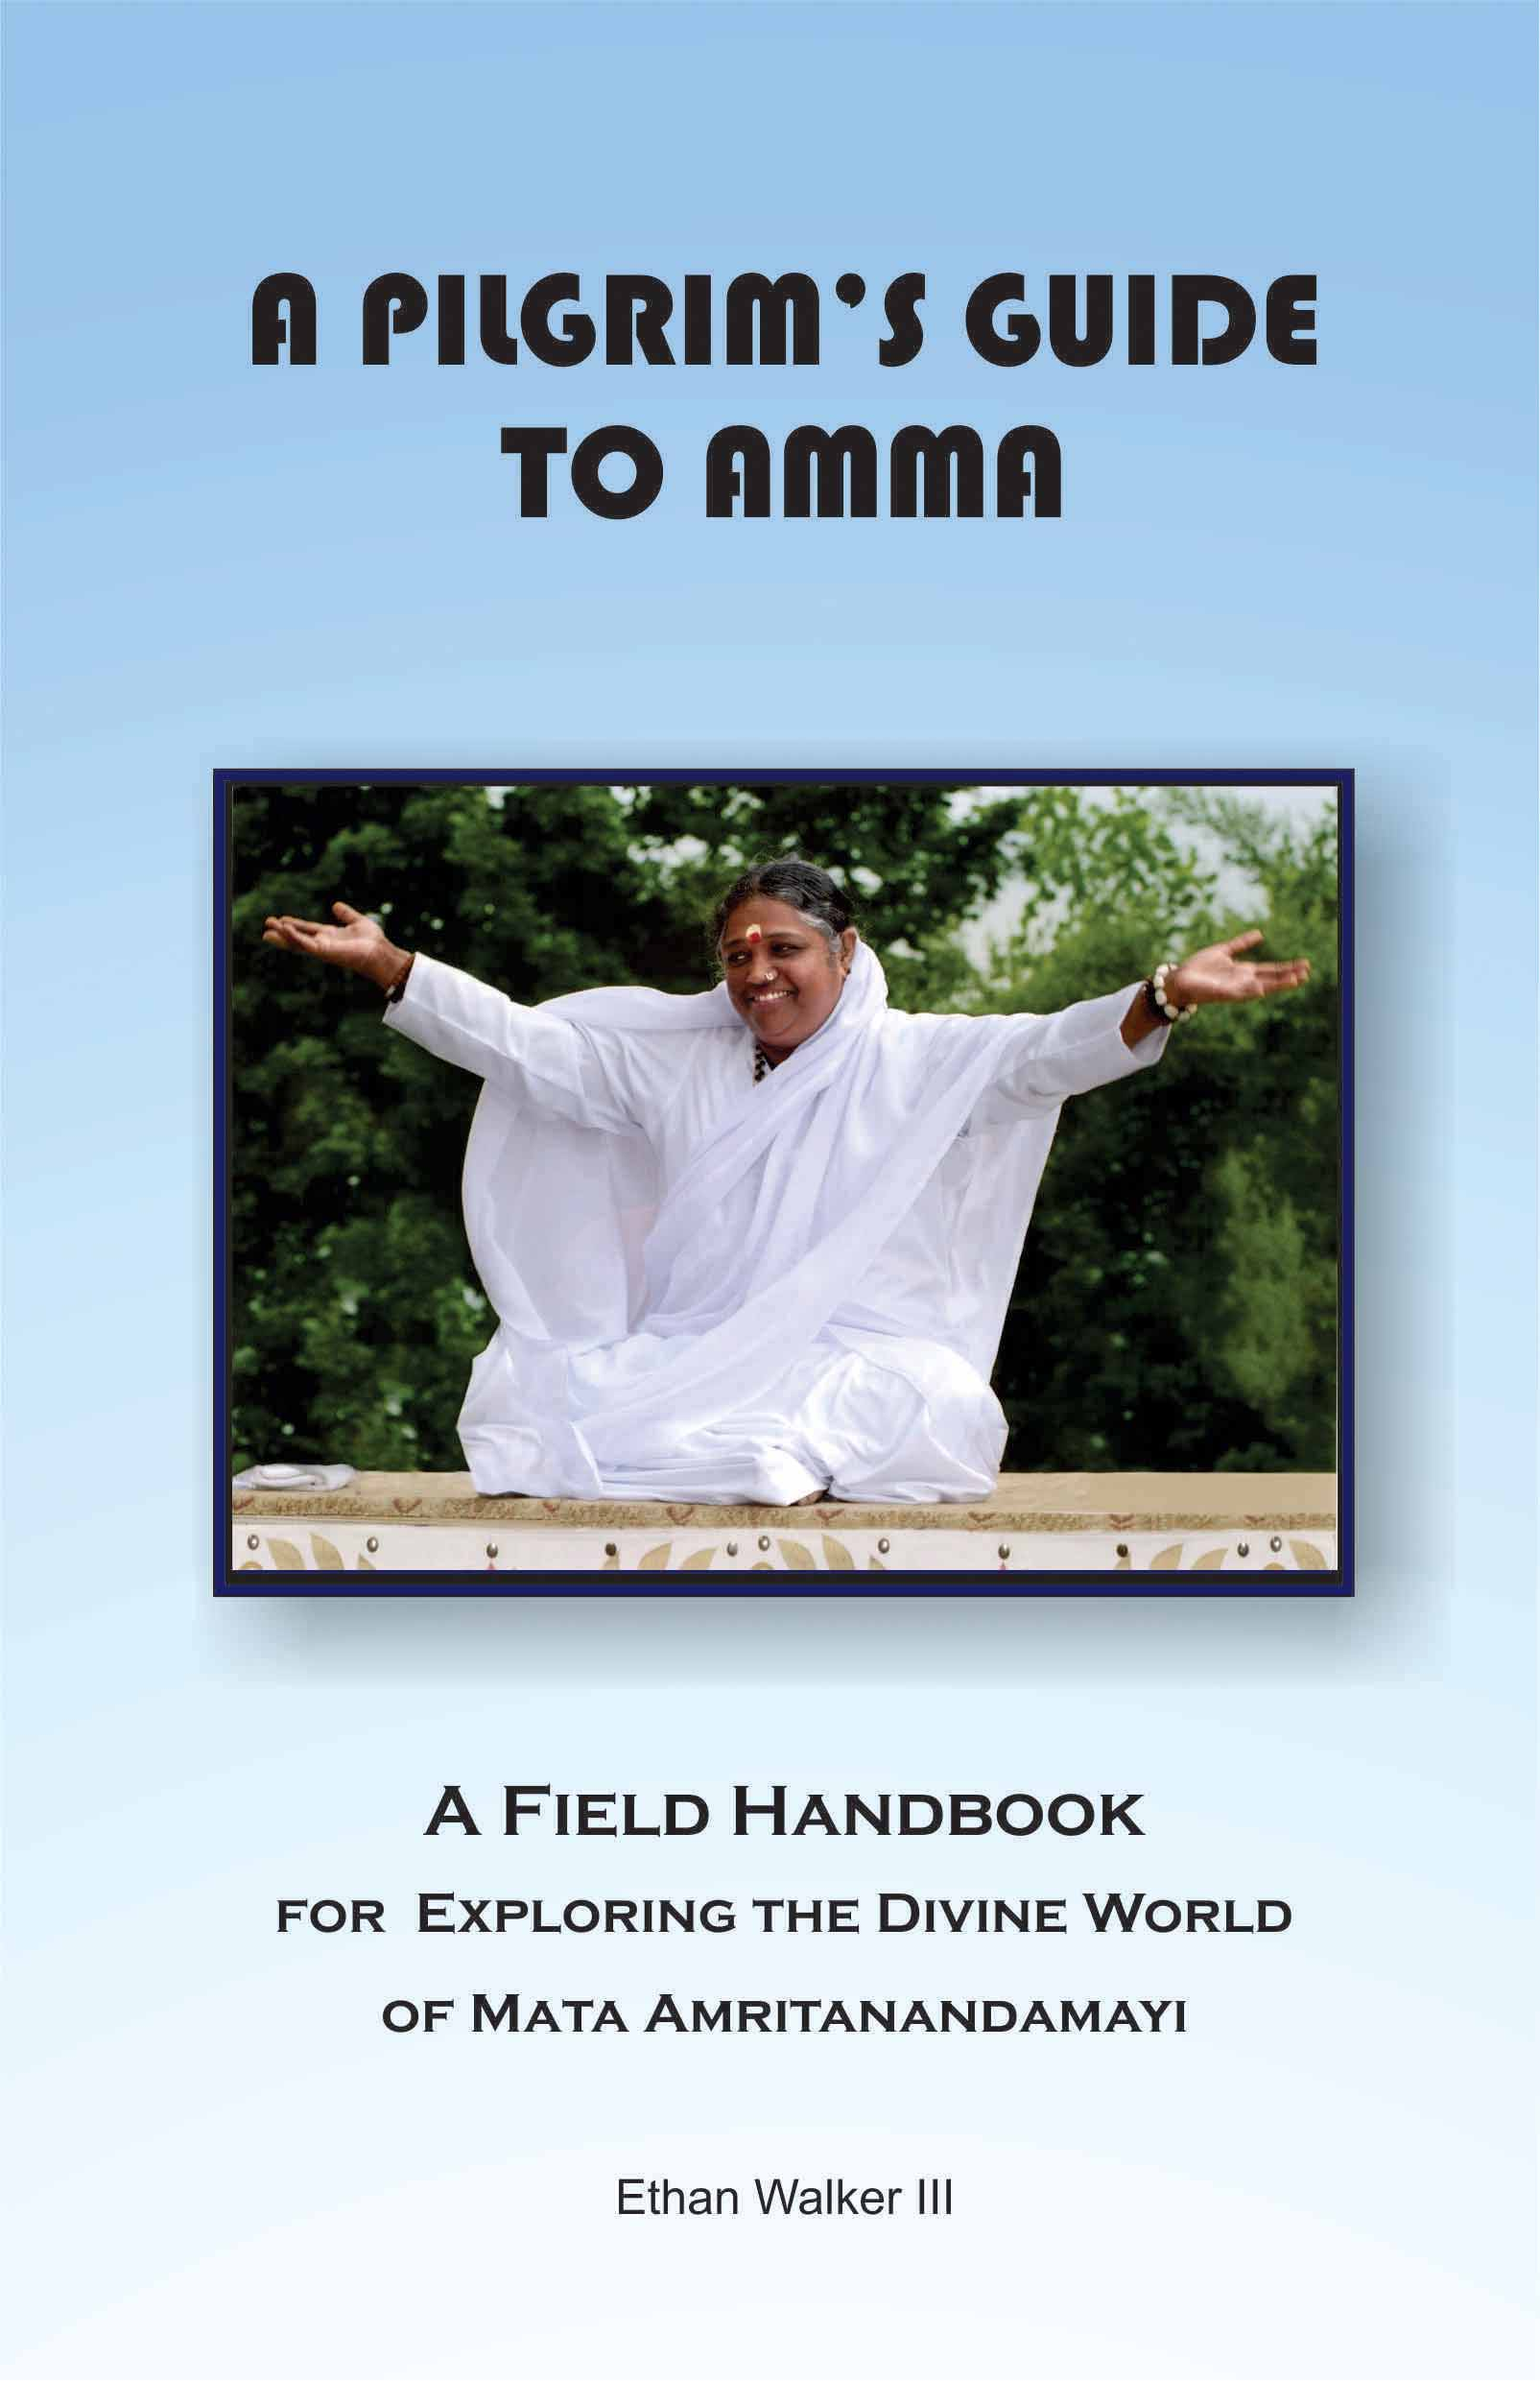 Pilgrim's guide to Amma